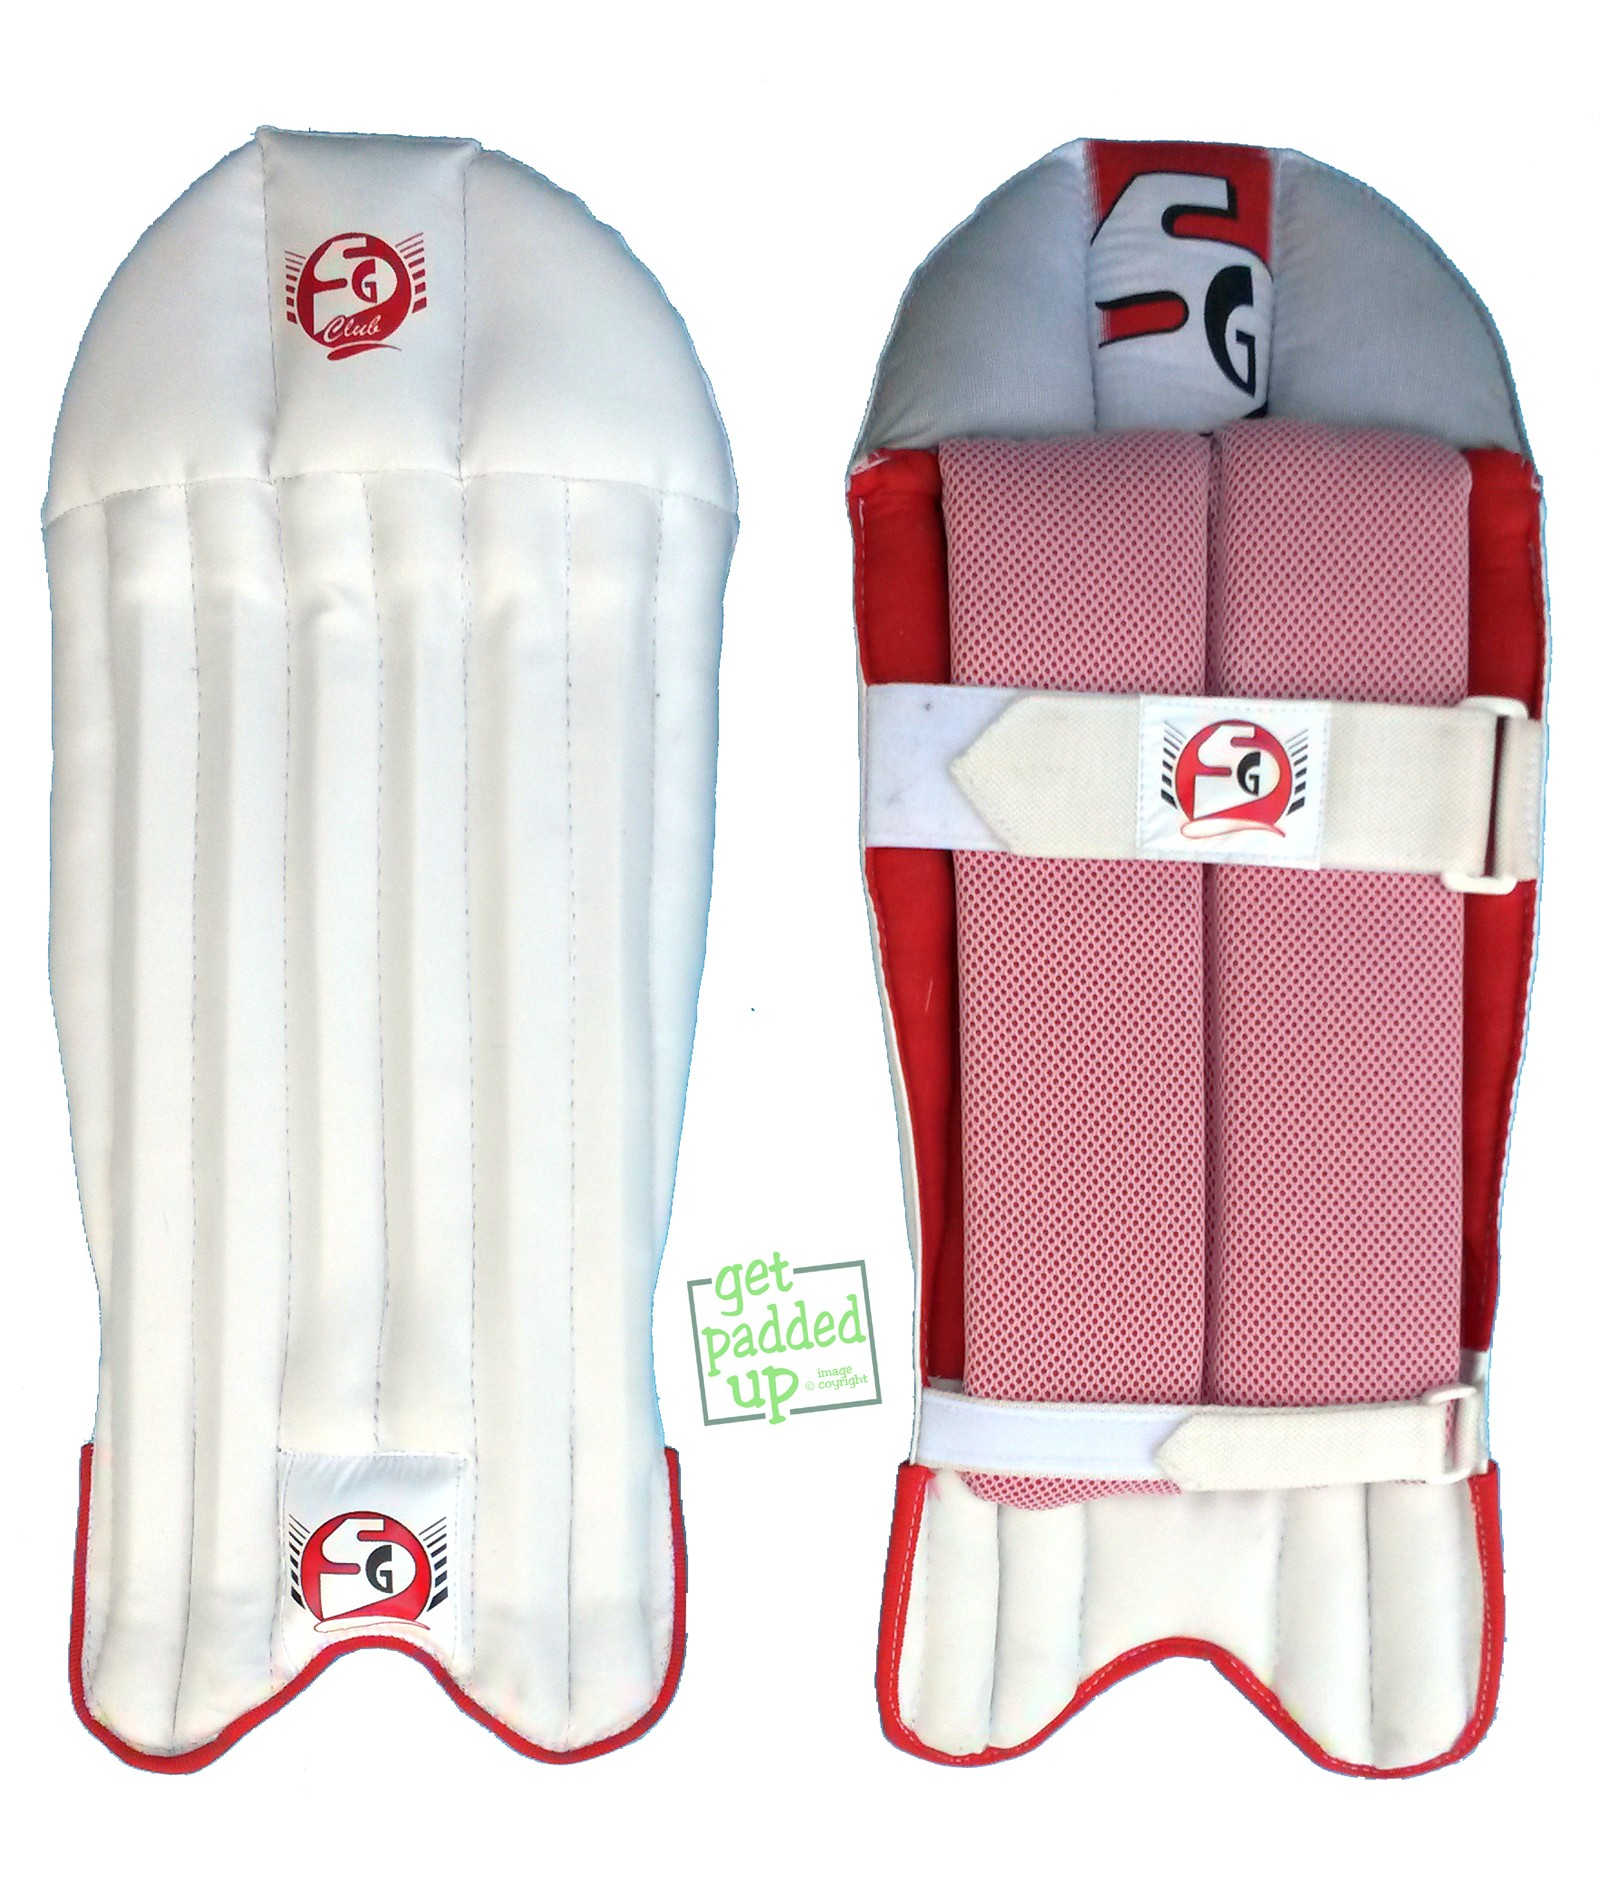 SG Club Cricket Wicket Keeping Pads